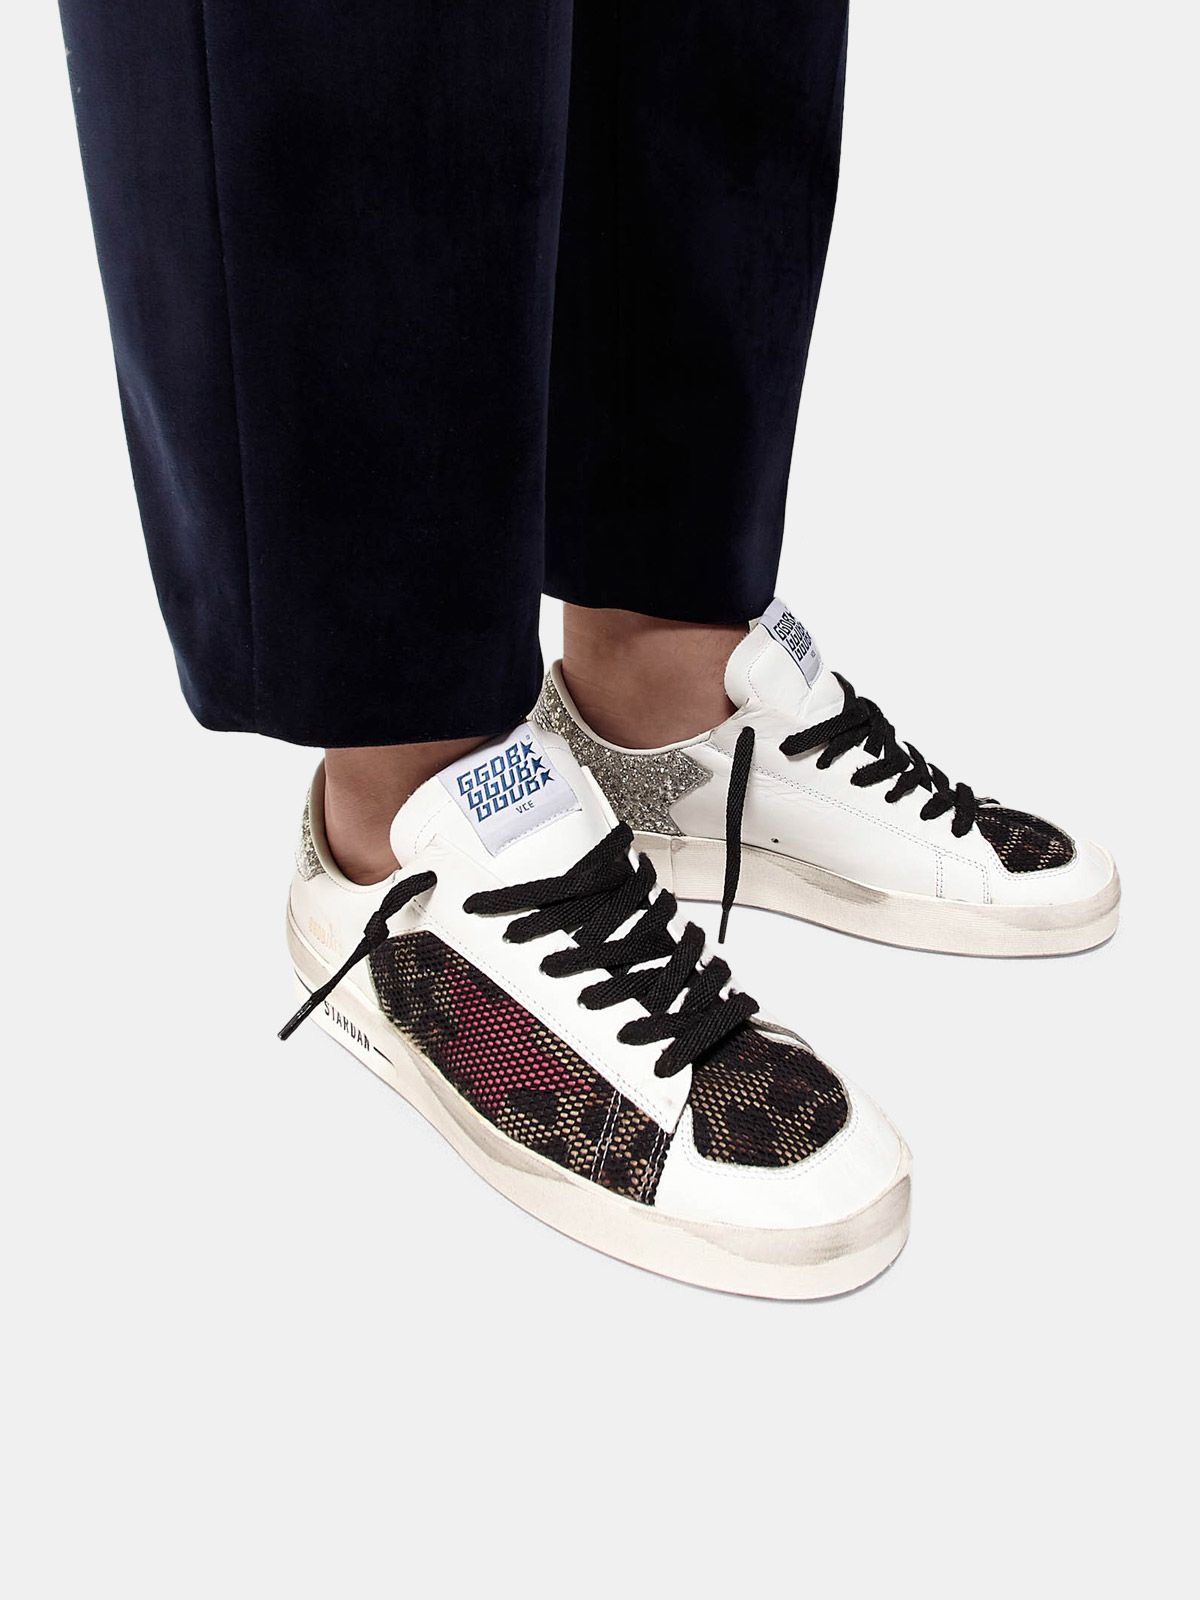 Golden Goose - Stardan sneakers with leopard-print star and glittery heel tab in